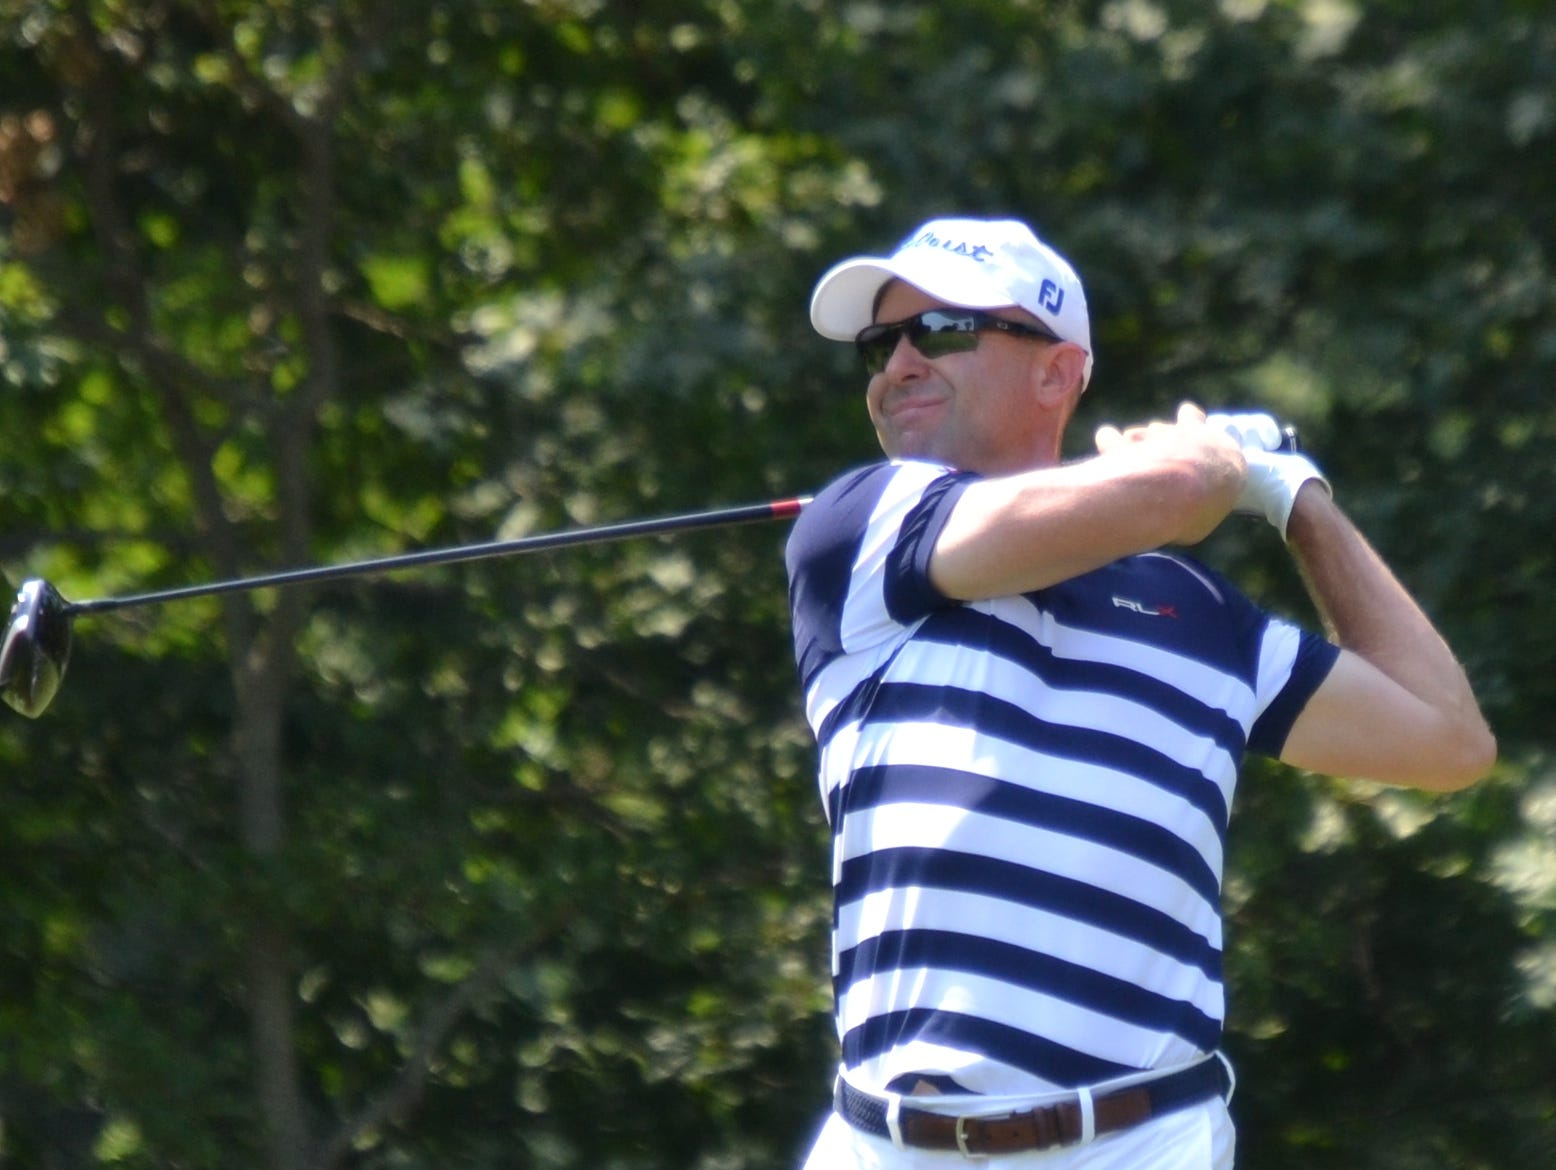 Rob Labritz tees off at the 16th hole Thursday during the final round of the New York State Open at Bethpage State Park. The GlenArbor director of golf won on the first hole of sudden death.